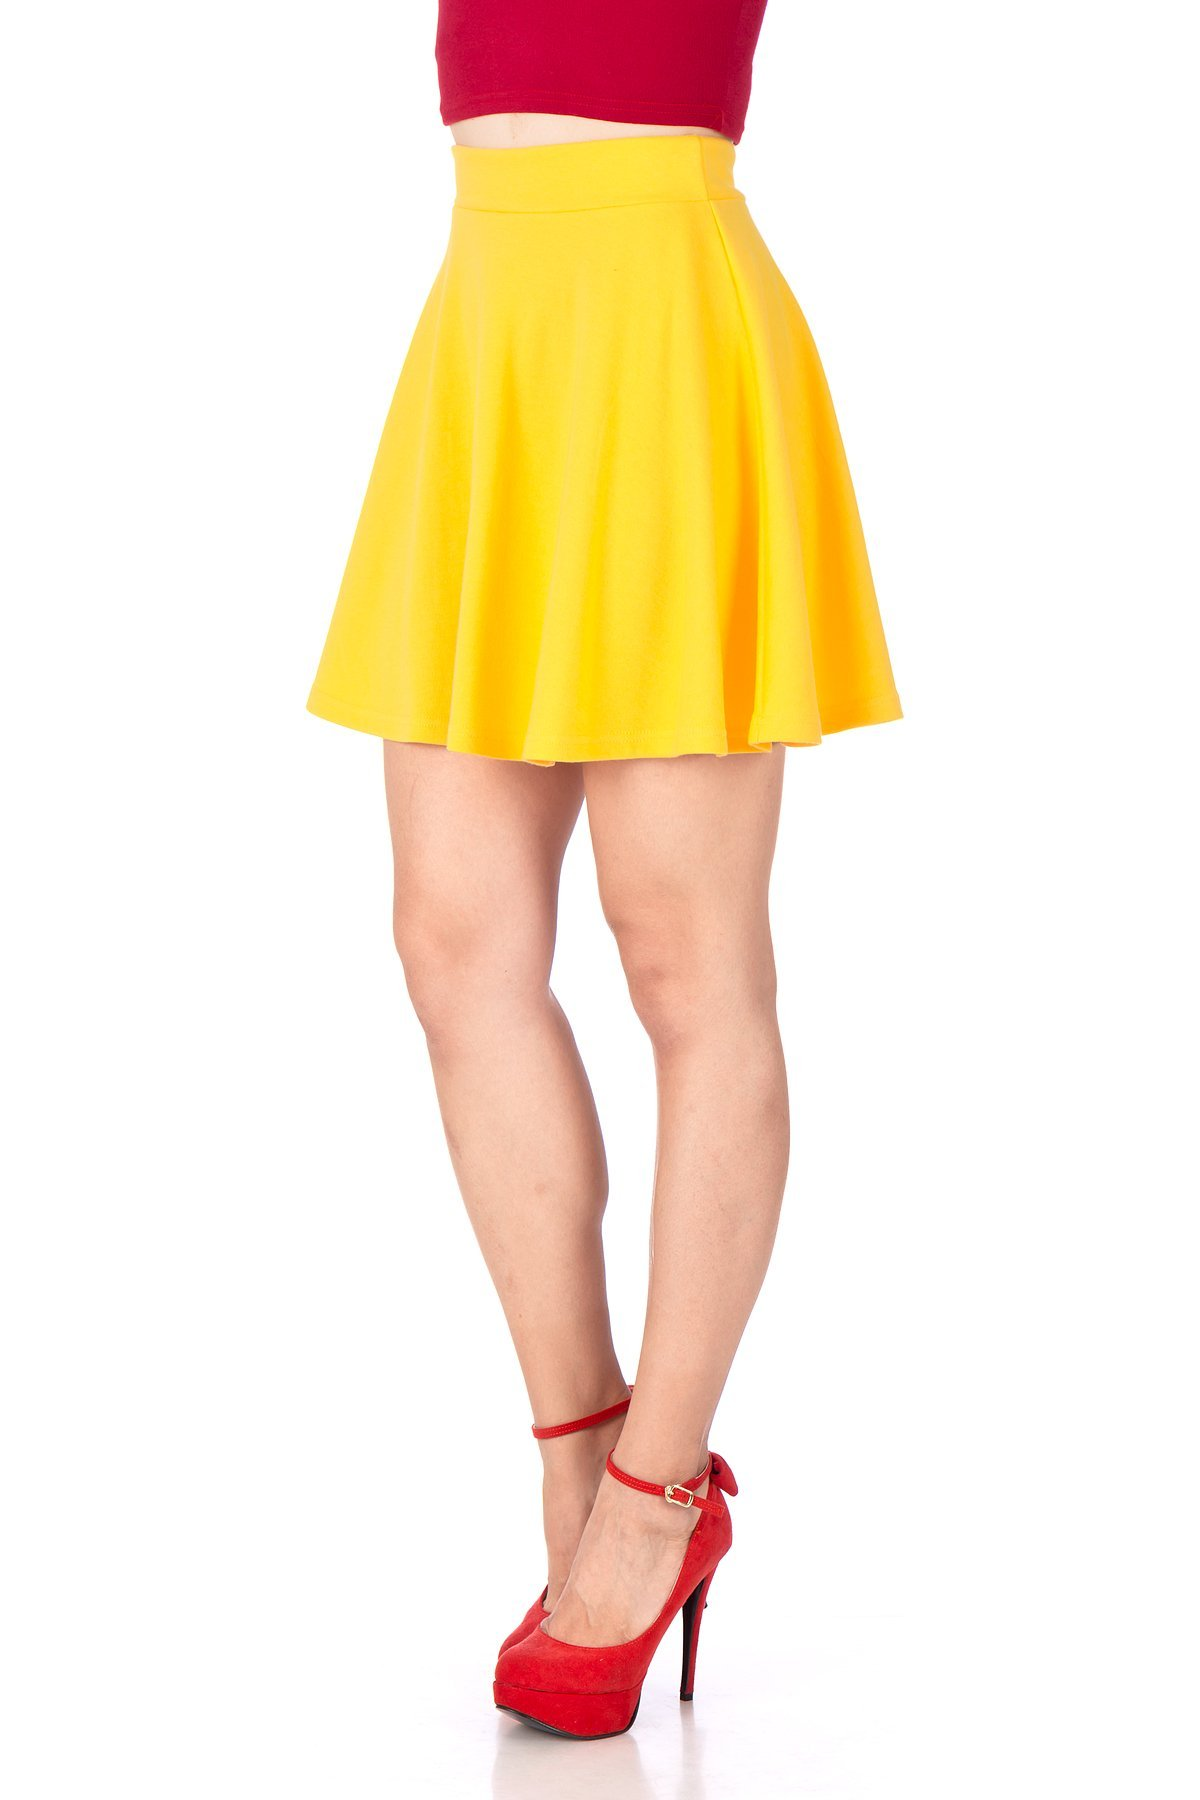 737fd59a7e Basic Solid Stretchy Cotton High Waist A line Flared Skater Mini Skirt  Yellow 06 1